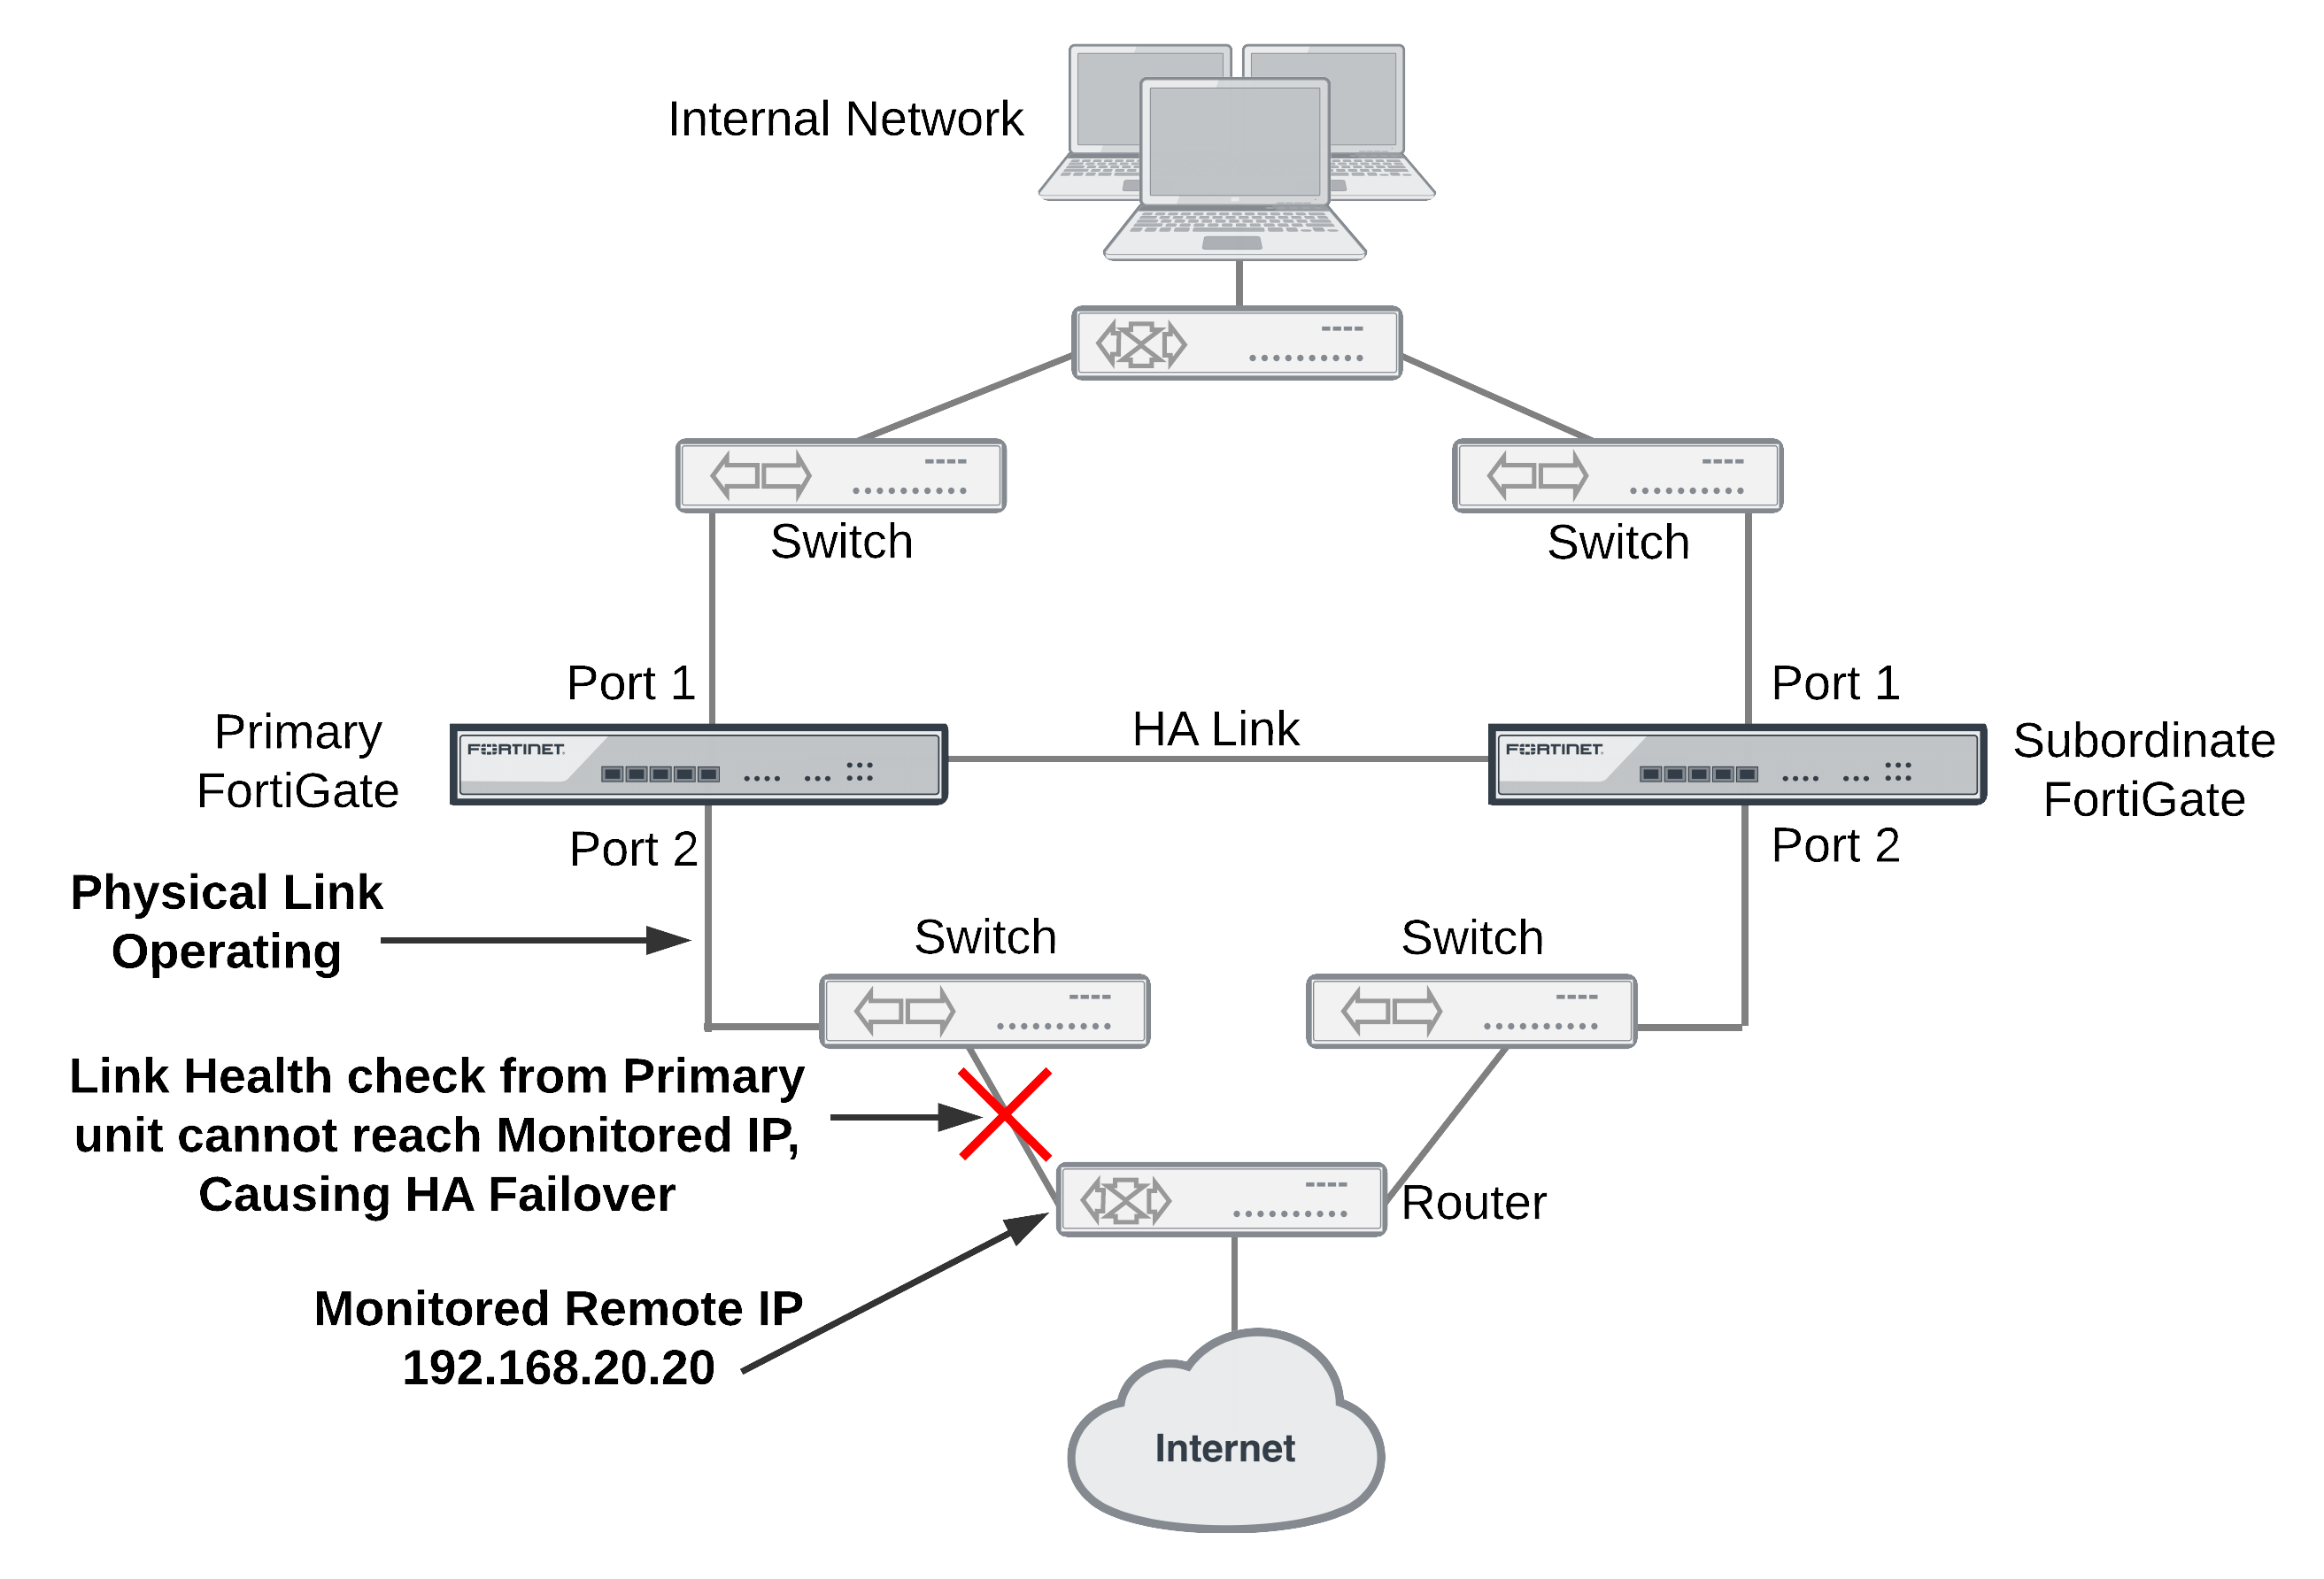 Ha And Failover Protection Sha1 Block Diagram Example Remote Ip Monitoring Topology